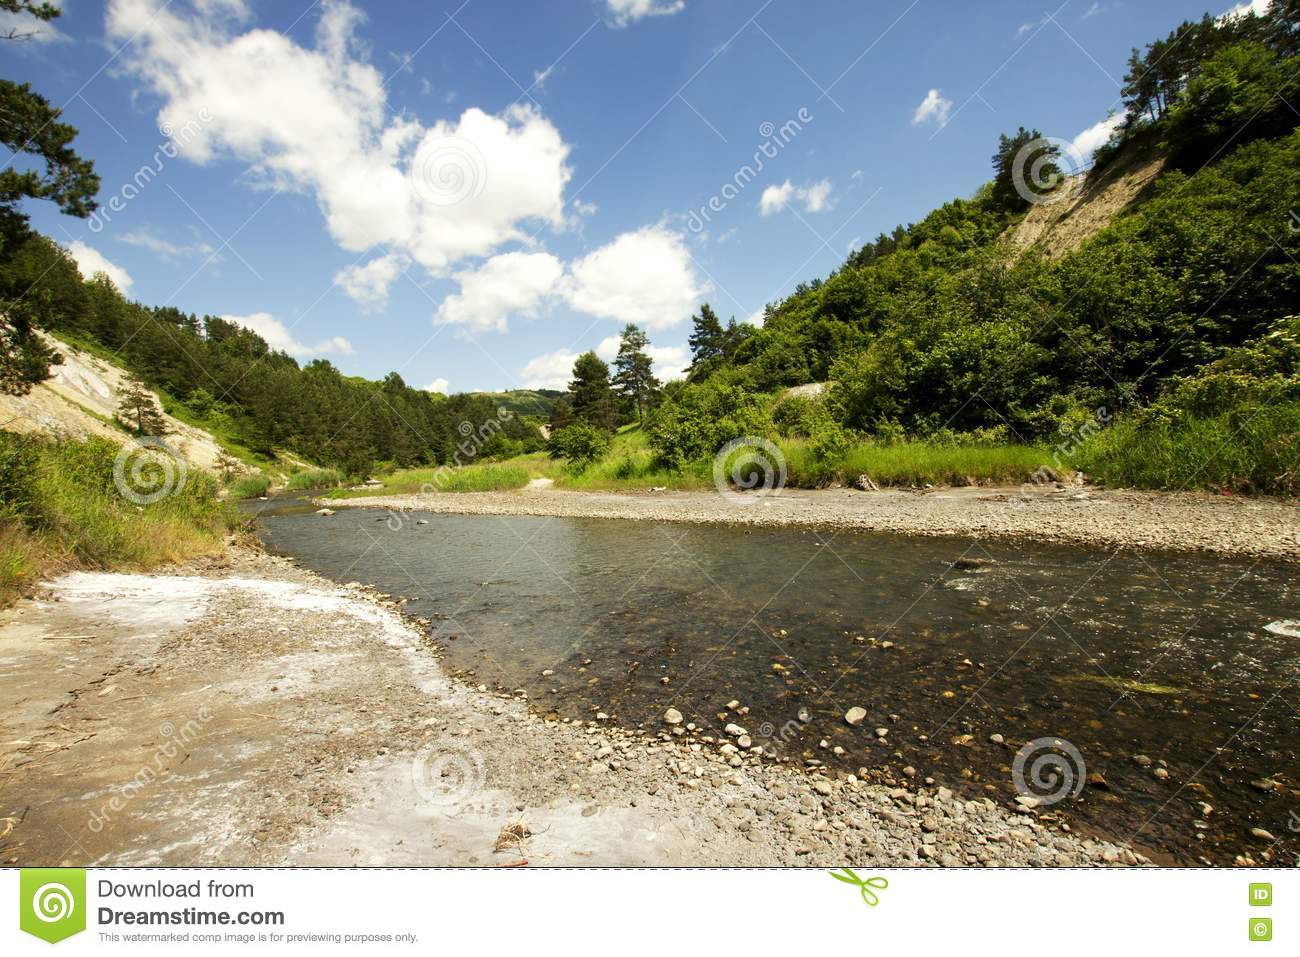 Beautiful Landscape With River Picture. Image  14774818 0c54abe110d